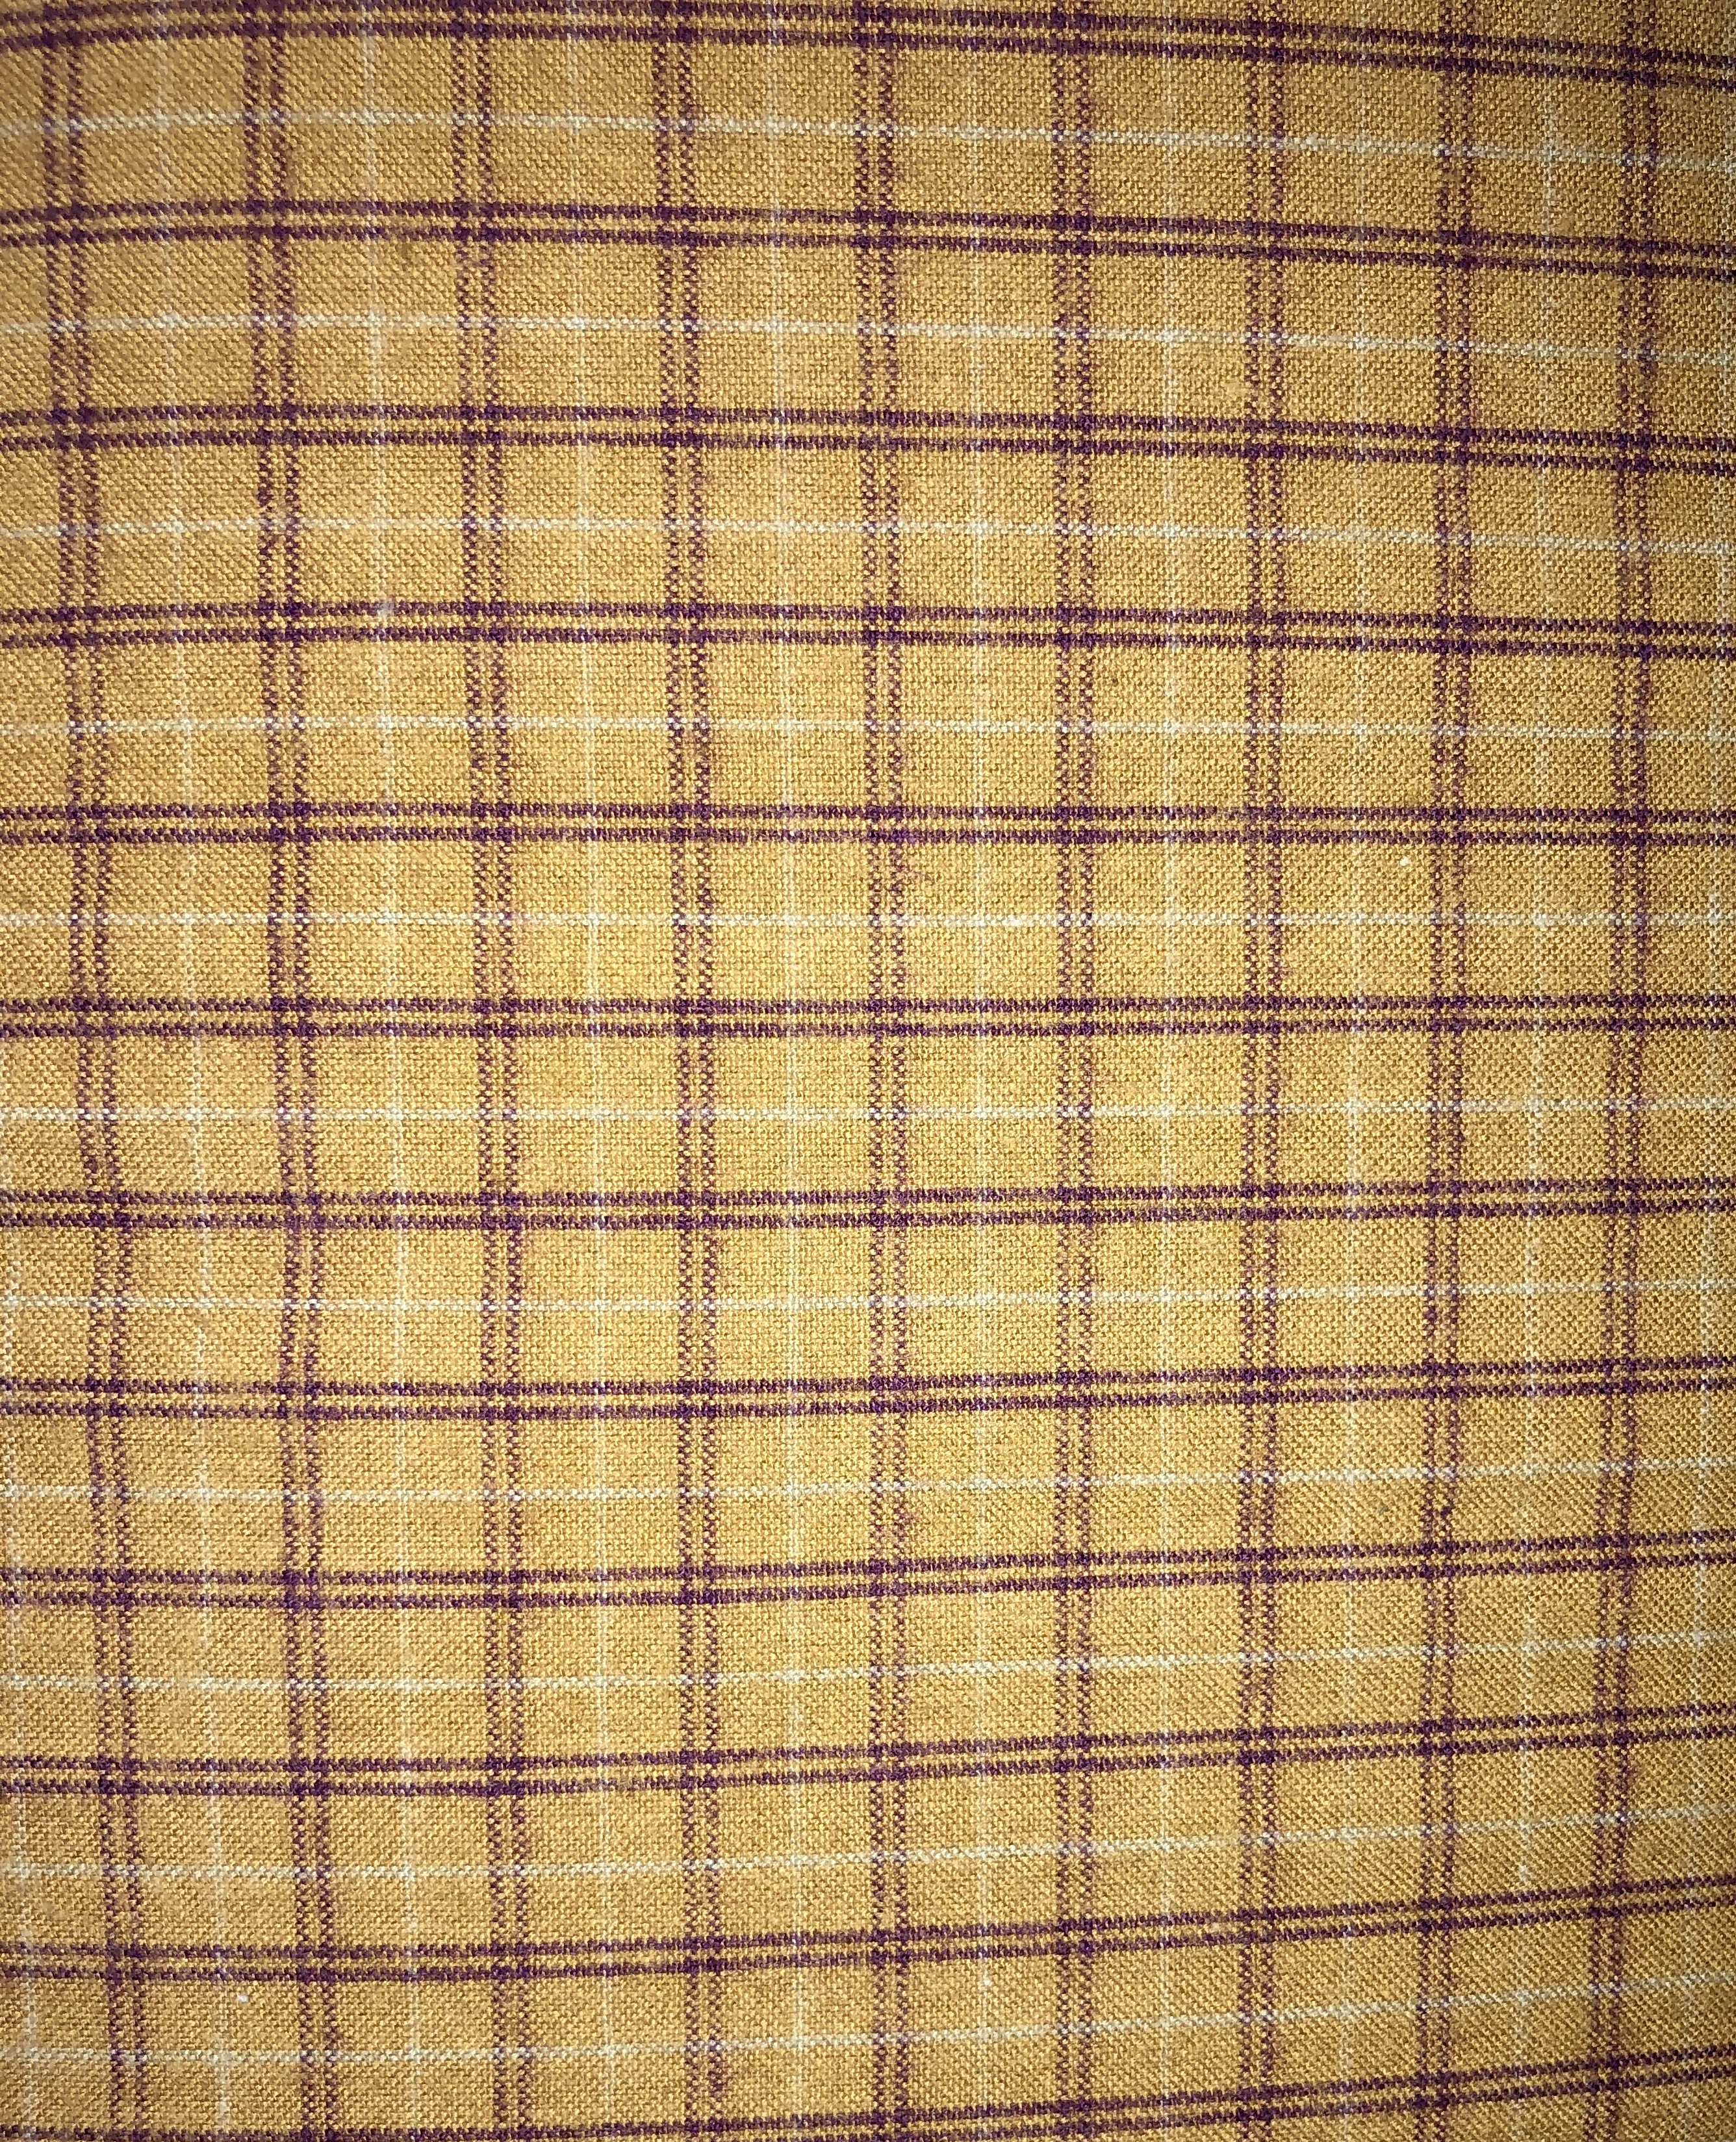 Yarn Dyed Flannel - Tan Plaid - 1/2m cut 55169